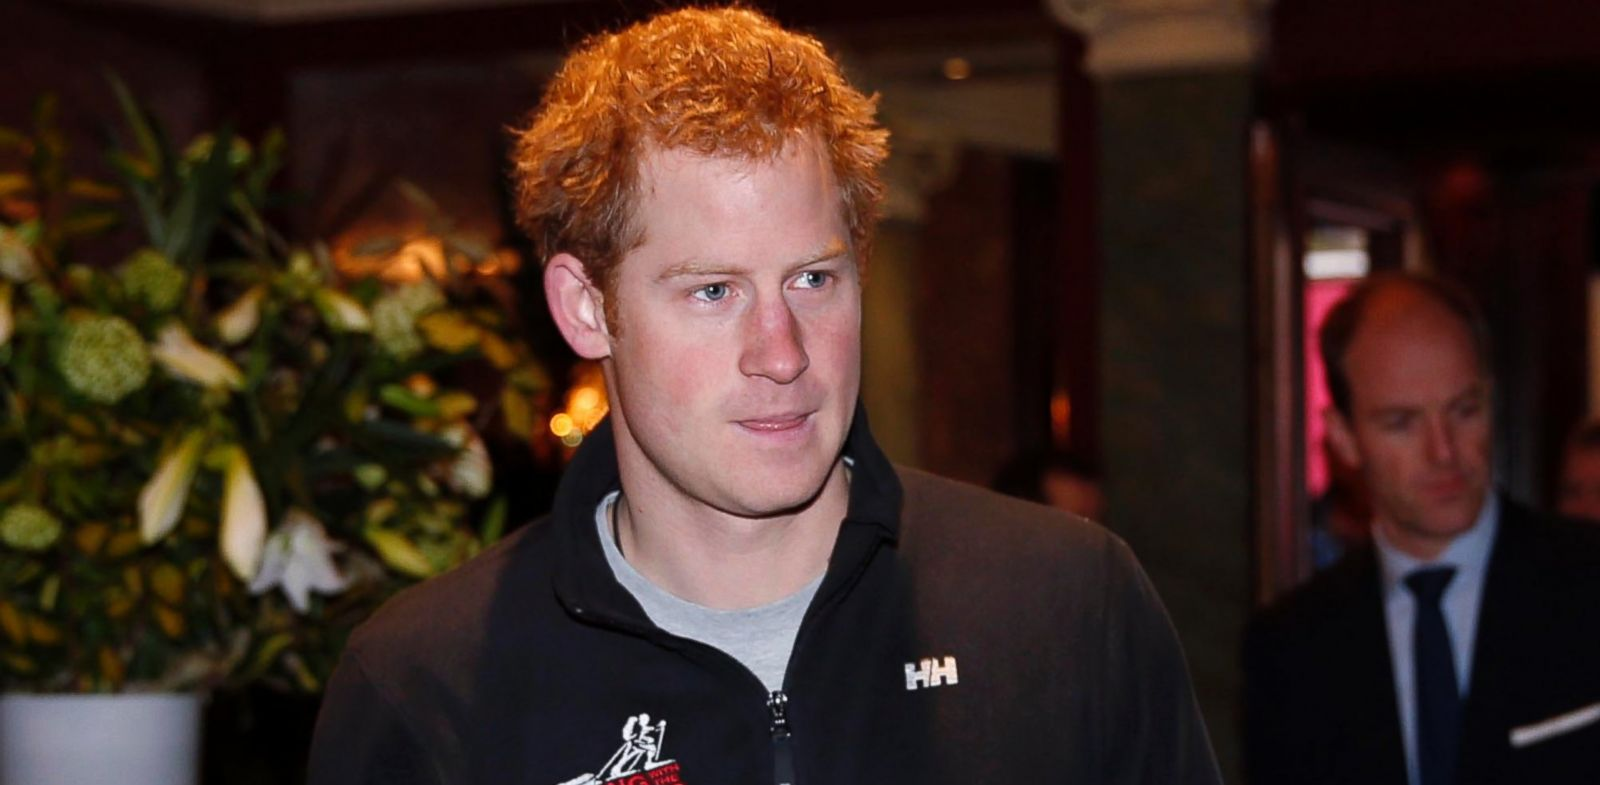 PHOTO: Prince Harry arrives for a welcome home news conference, Jan. 21, 2014, in central London.